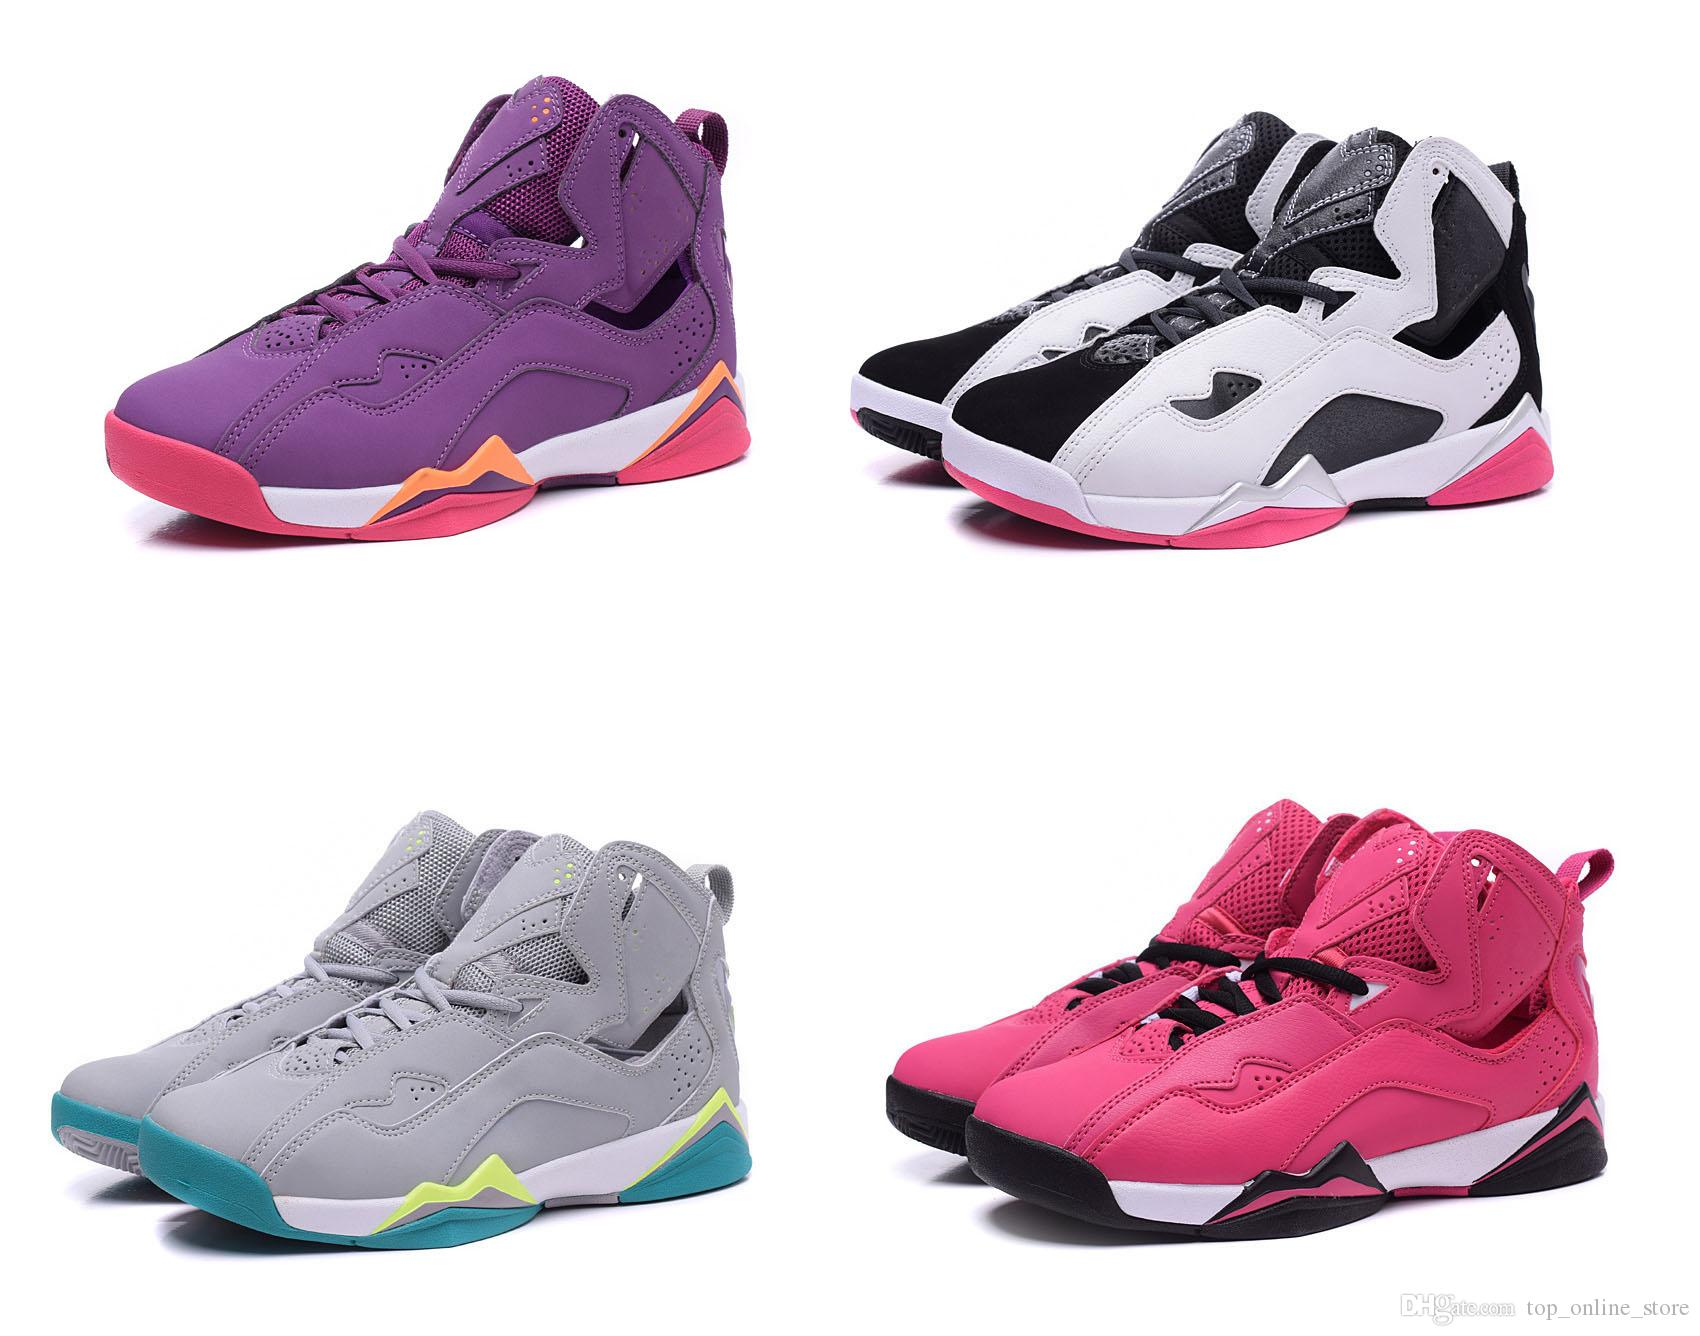 4545976b7f11a3 Retro 7 VII Basketball Shoes For Women True Flight Dan 7s Outdoor Sneakers  Come With Receipt Bag Sock Box Mens Basketball Shoes Men Sneakers From ...